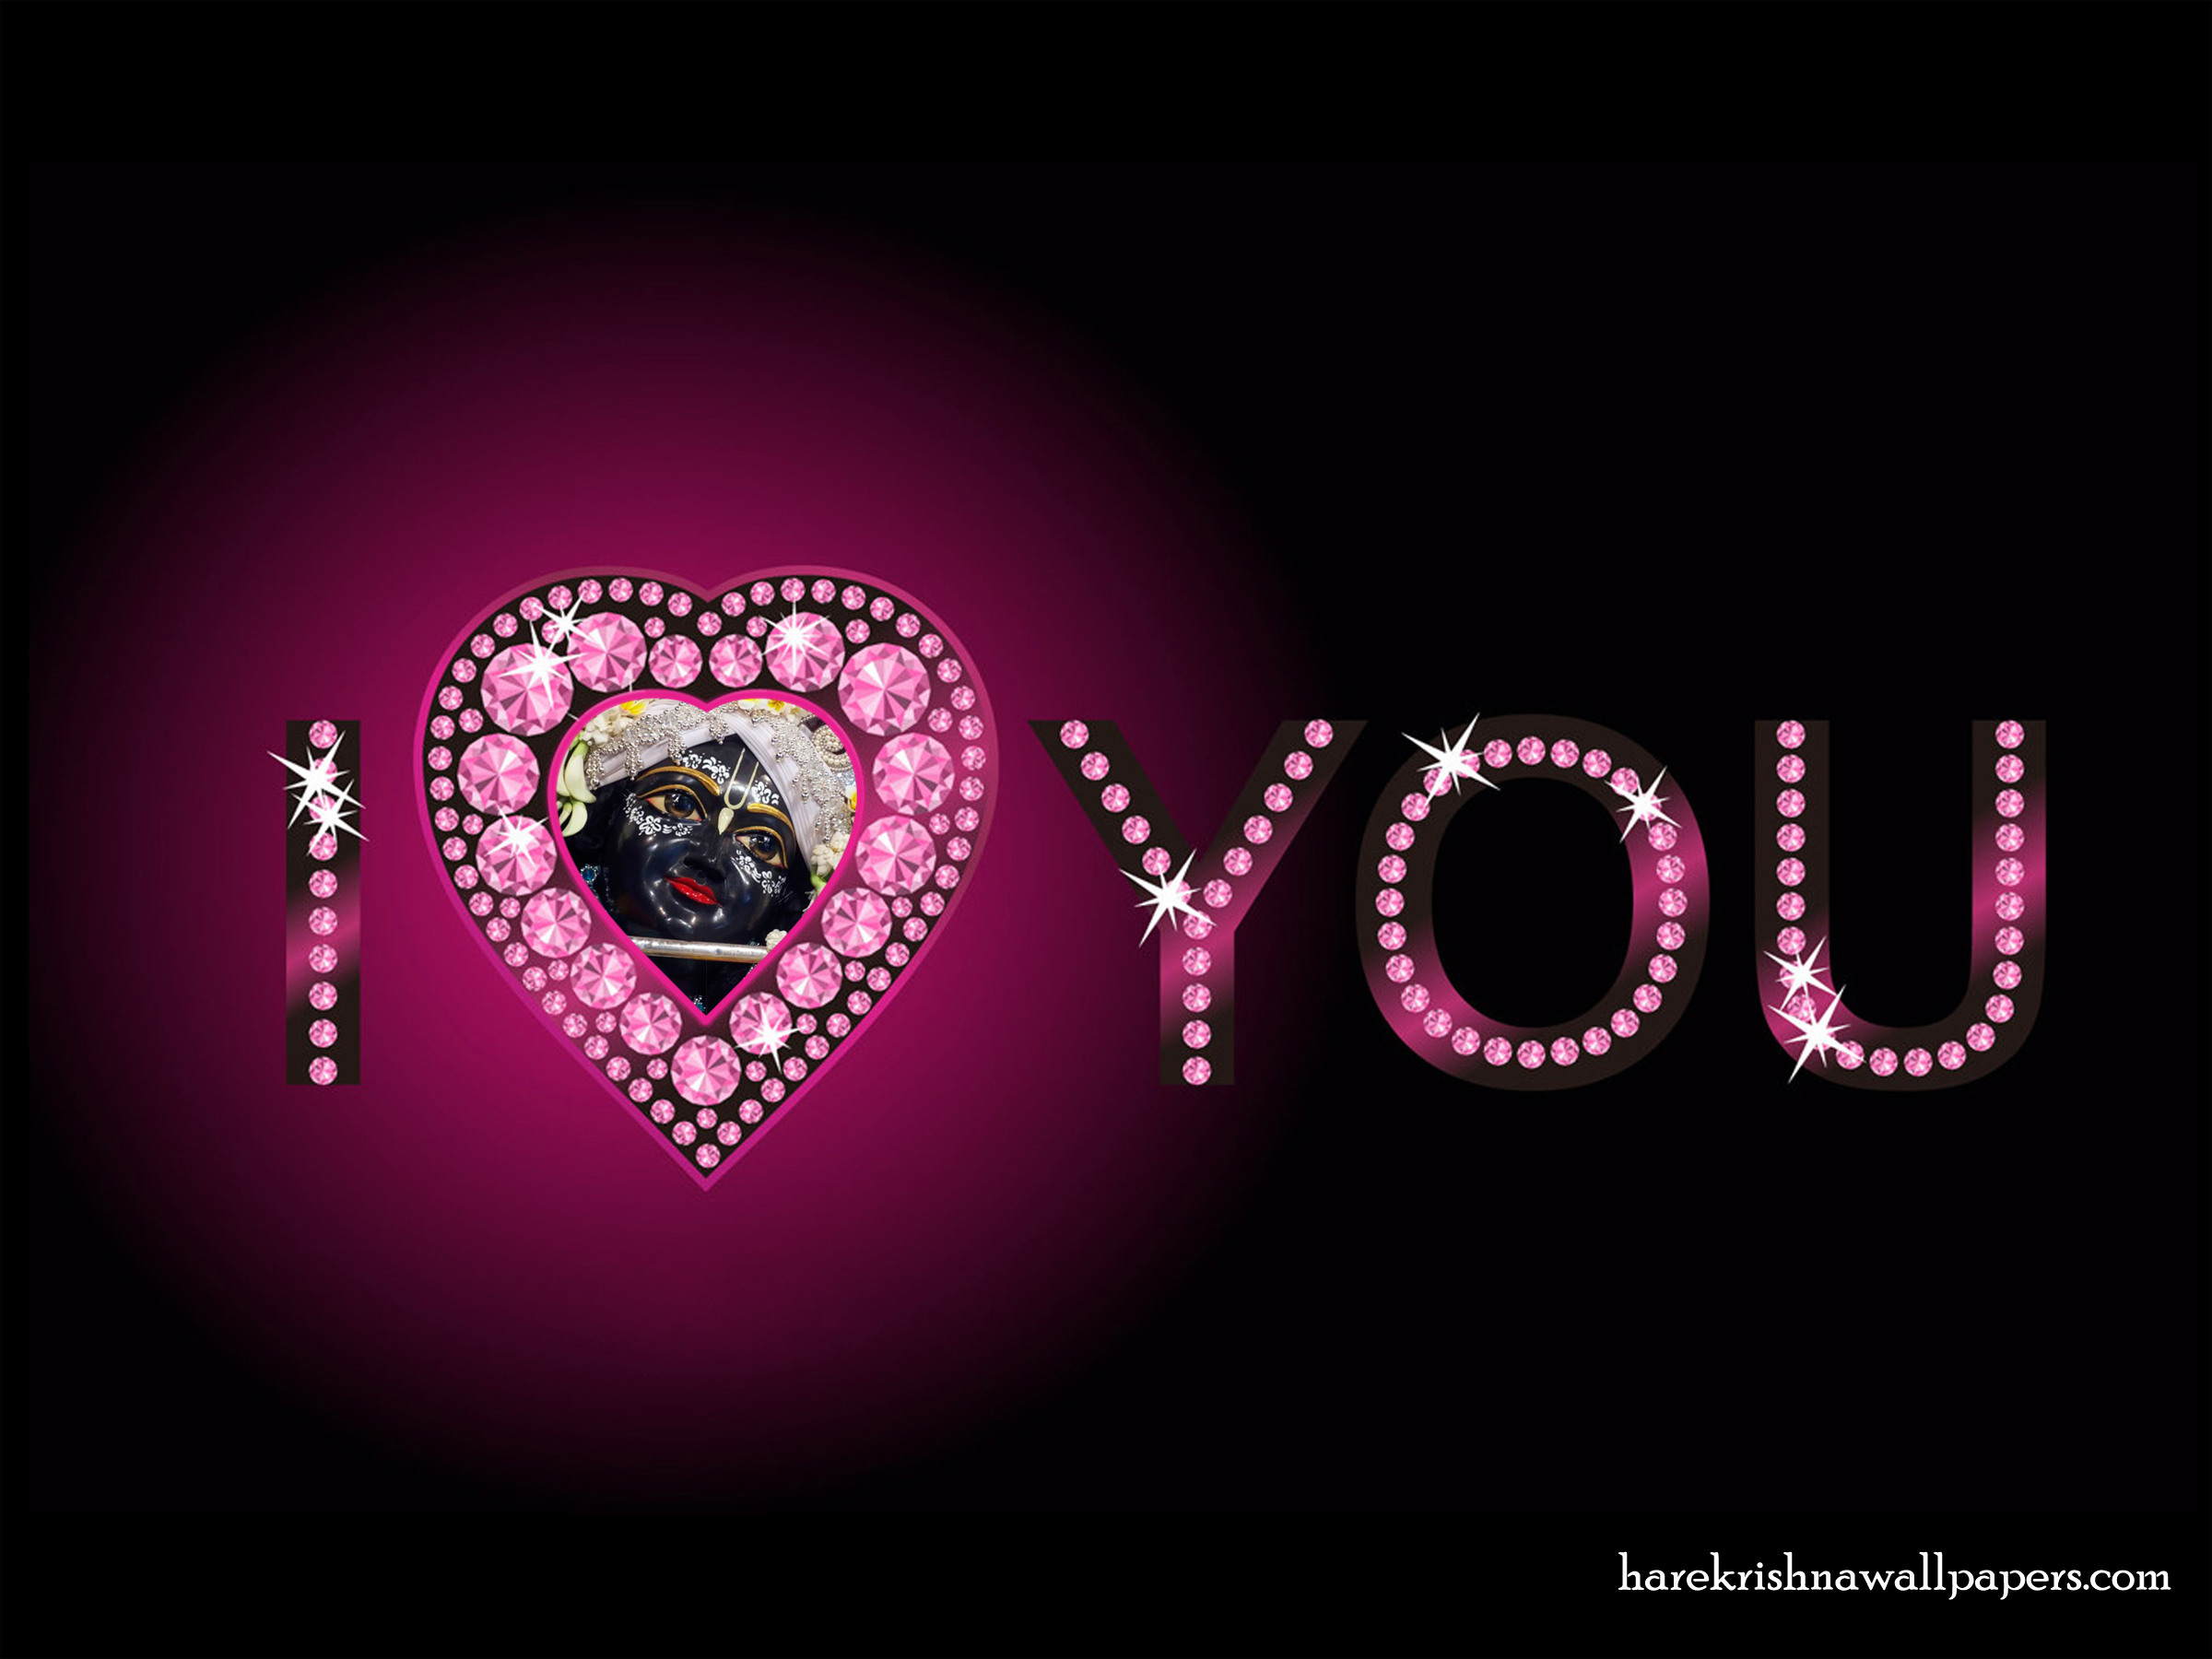 I Love You Madhava Wallpaper (005) Size 2400x1800 Download